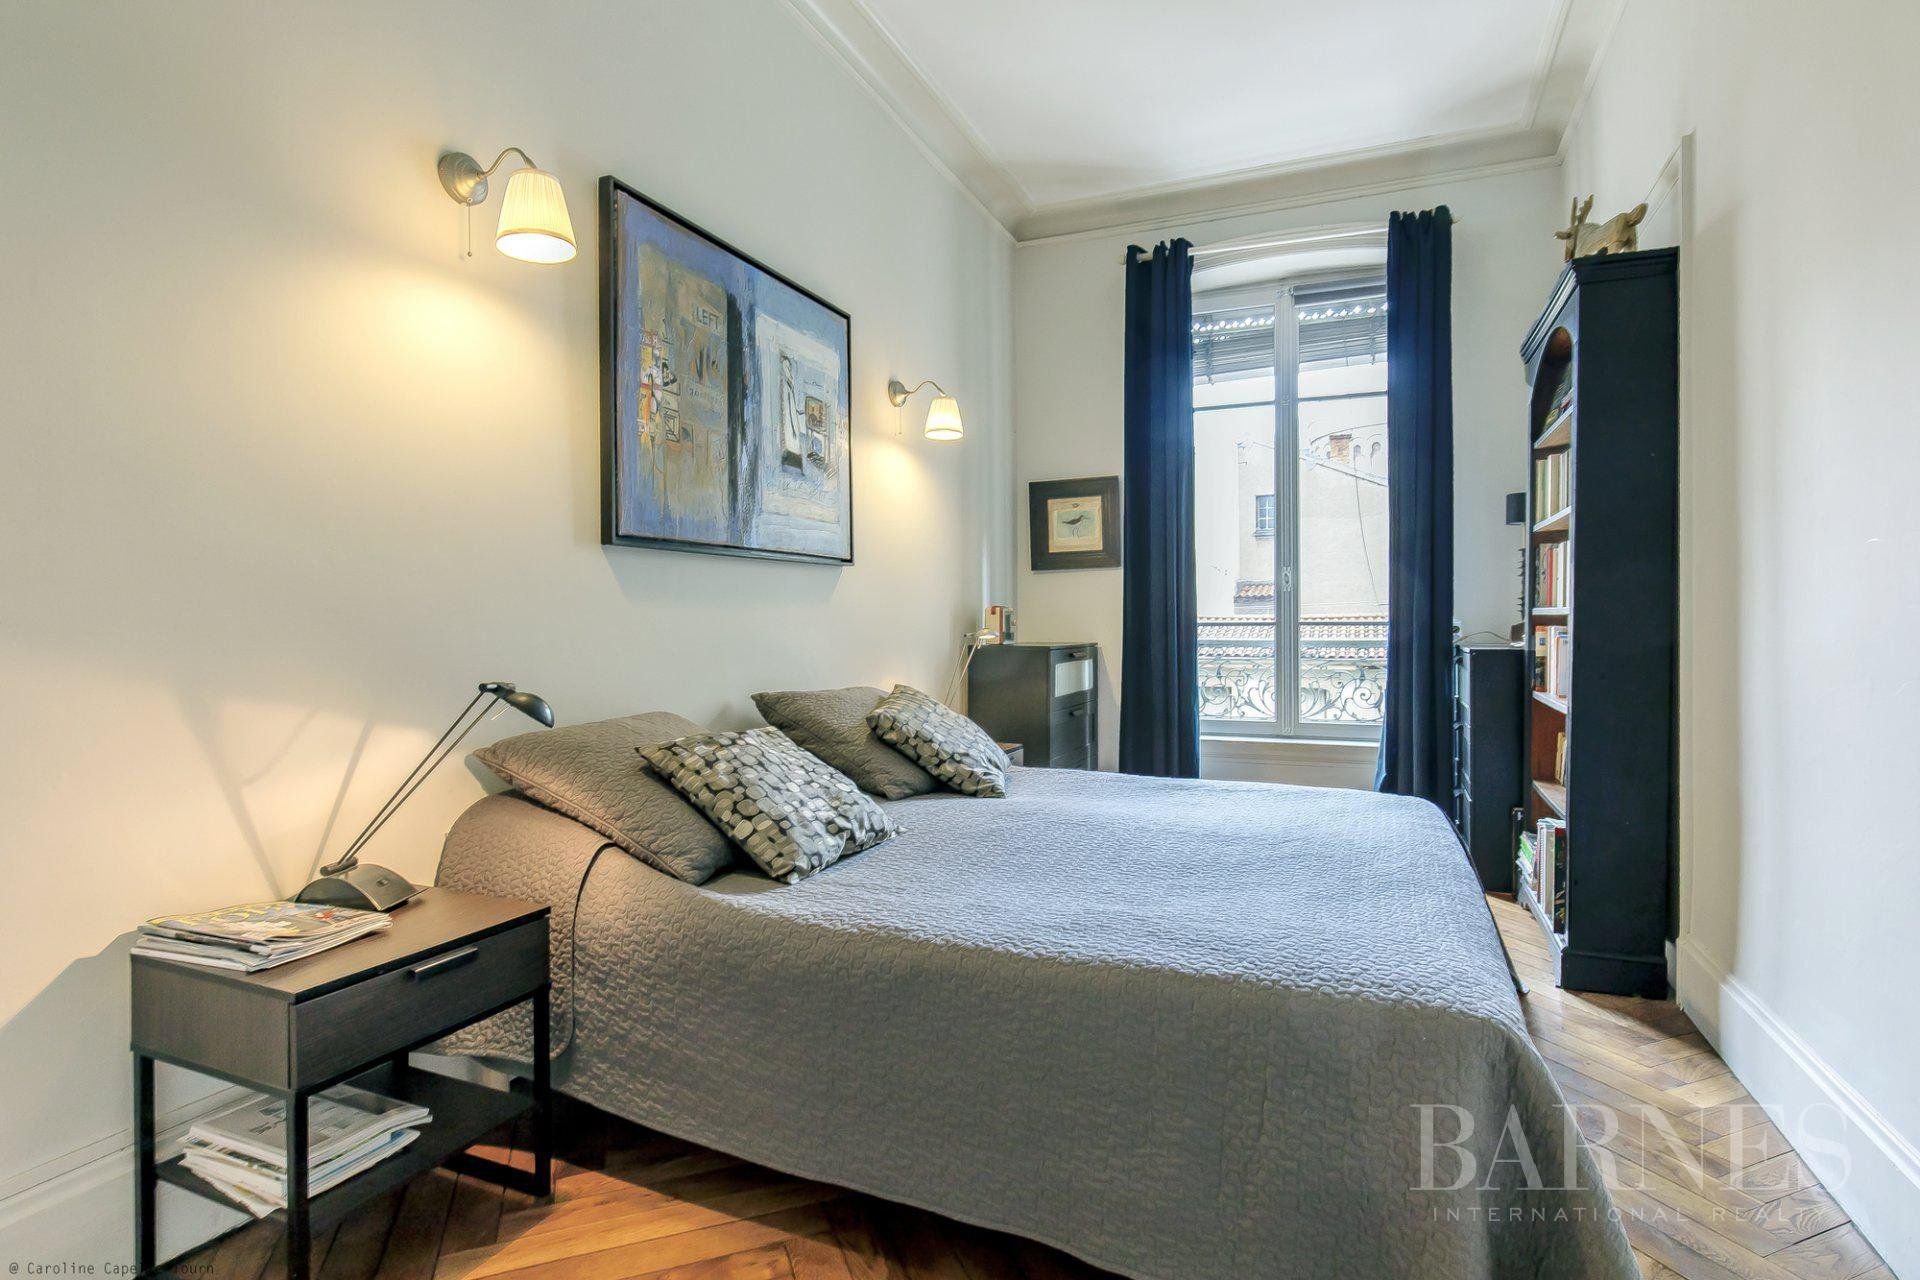 Lyon 3 - Prefecture - Apartment 117 sqm - 2 bedrooms